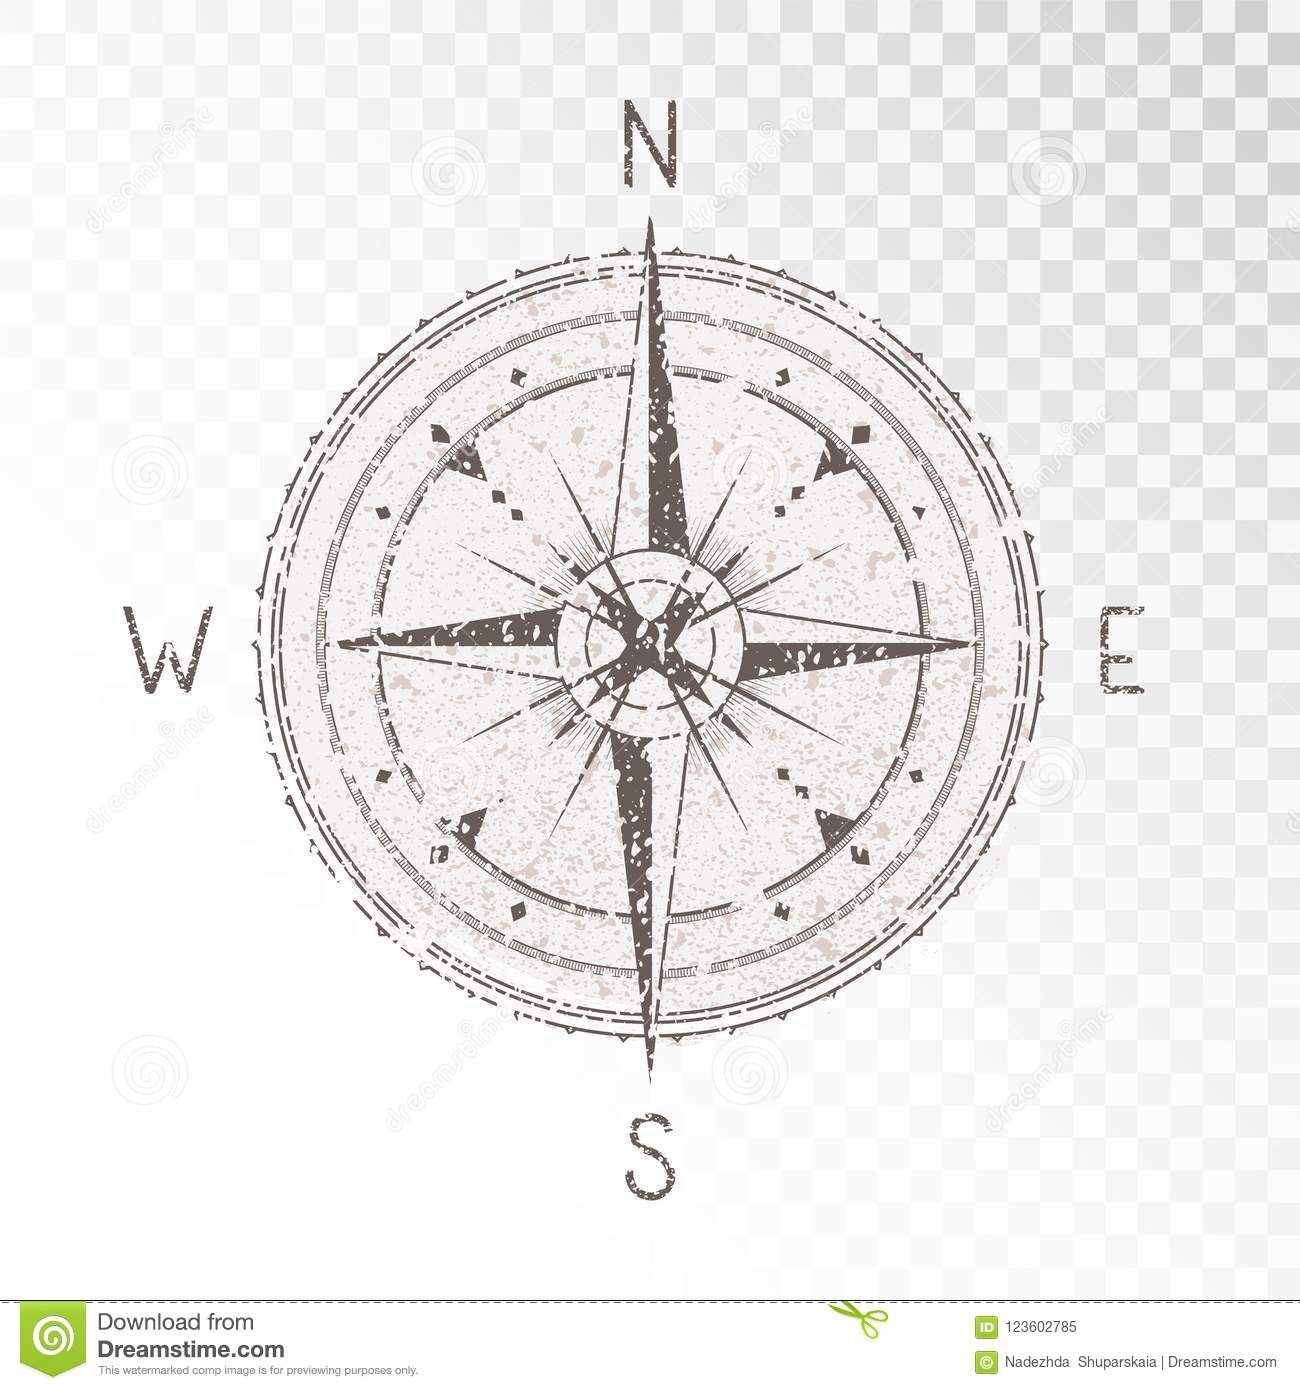 Vector Illustration With A Vintage Textured Compass Or